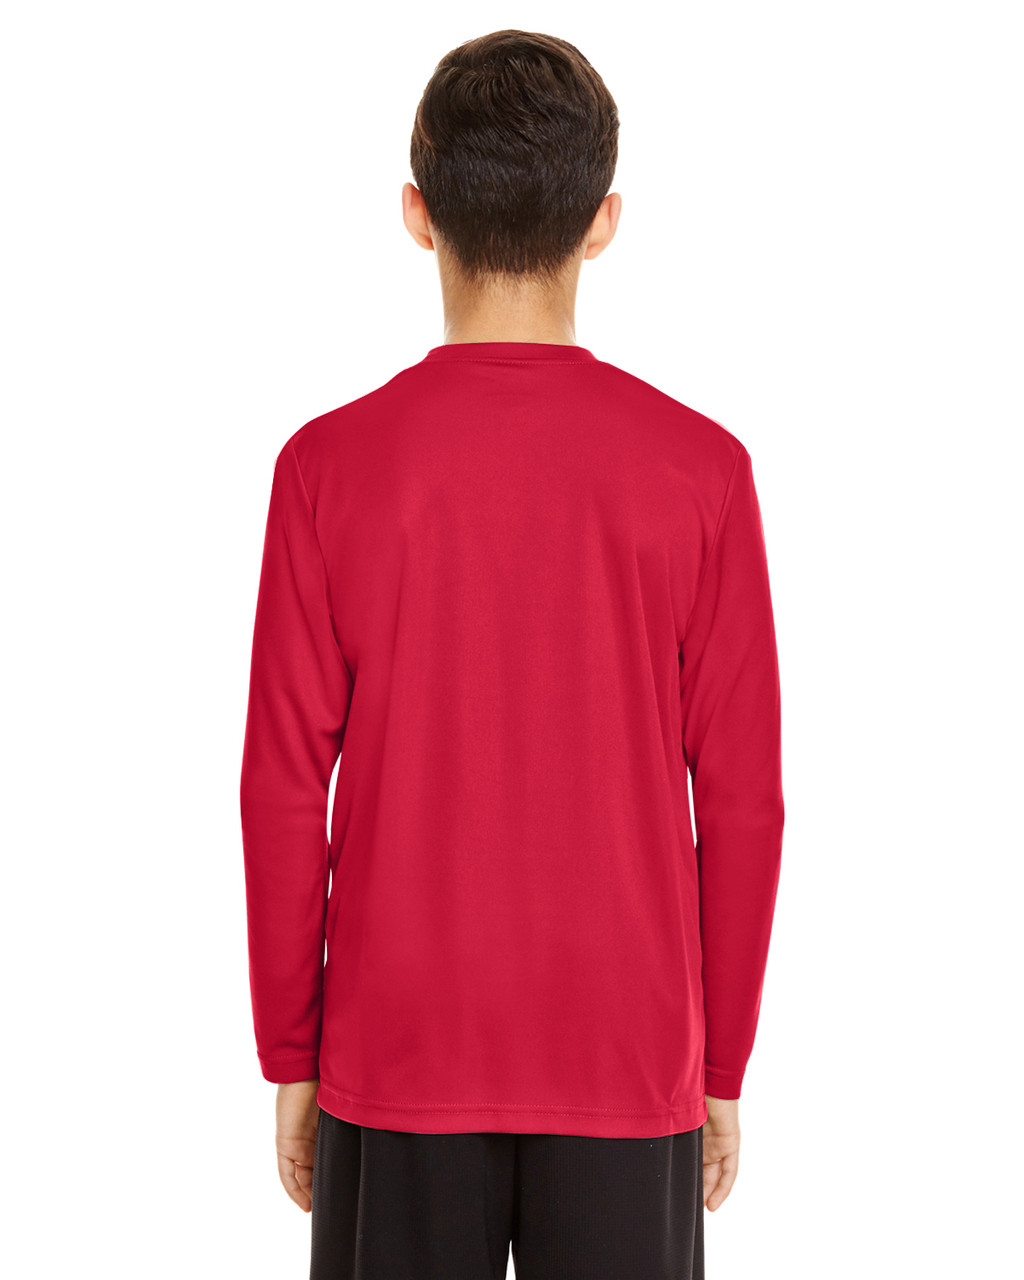 Sport Red, Back - TT11YL Team365 Youth Zone Performance Long Sleeve T-shirt | BlankClothing.ca